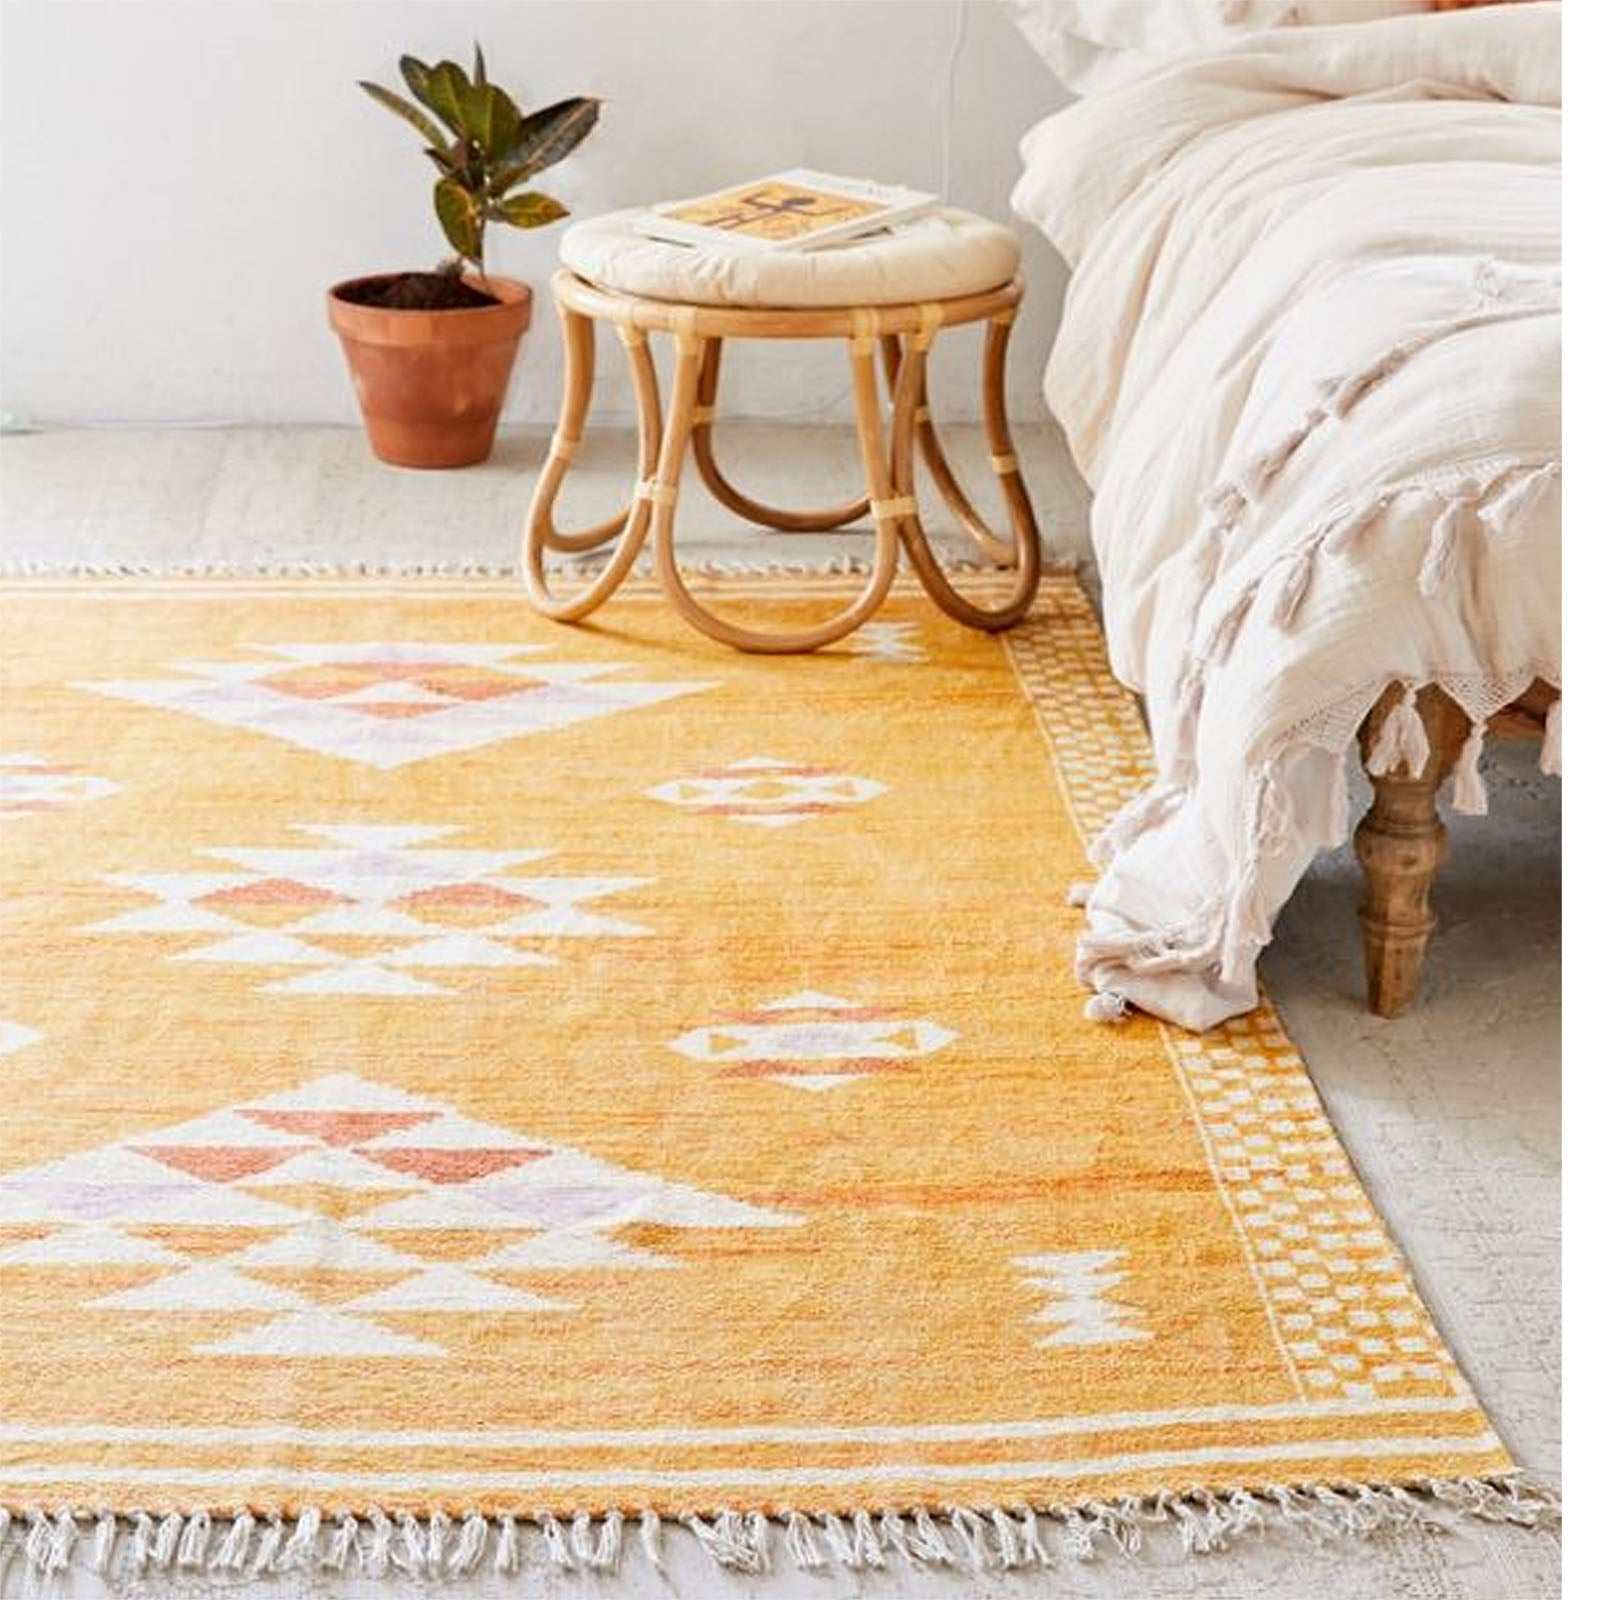 300X200  handmade  Rug JH-2705-XL -  سجادة يدوية 300 × 200 - Shop Online Furniture and Home Decor Store in Dubai, UAE at ebarza